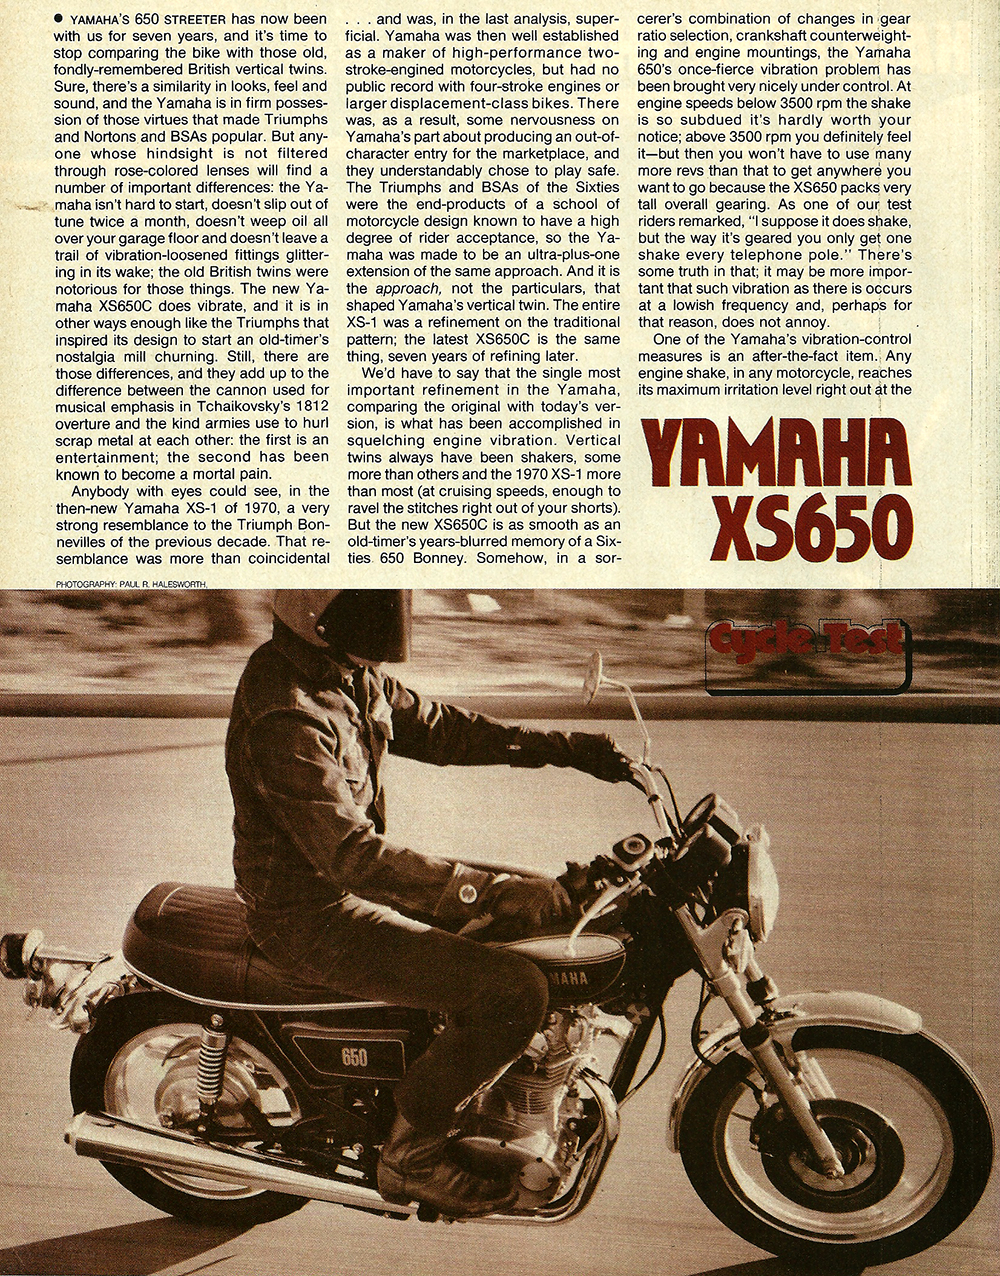 1977 Yamaha XS650D road test 1.jpg